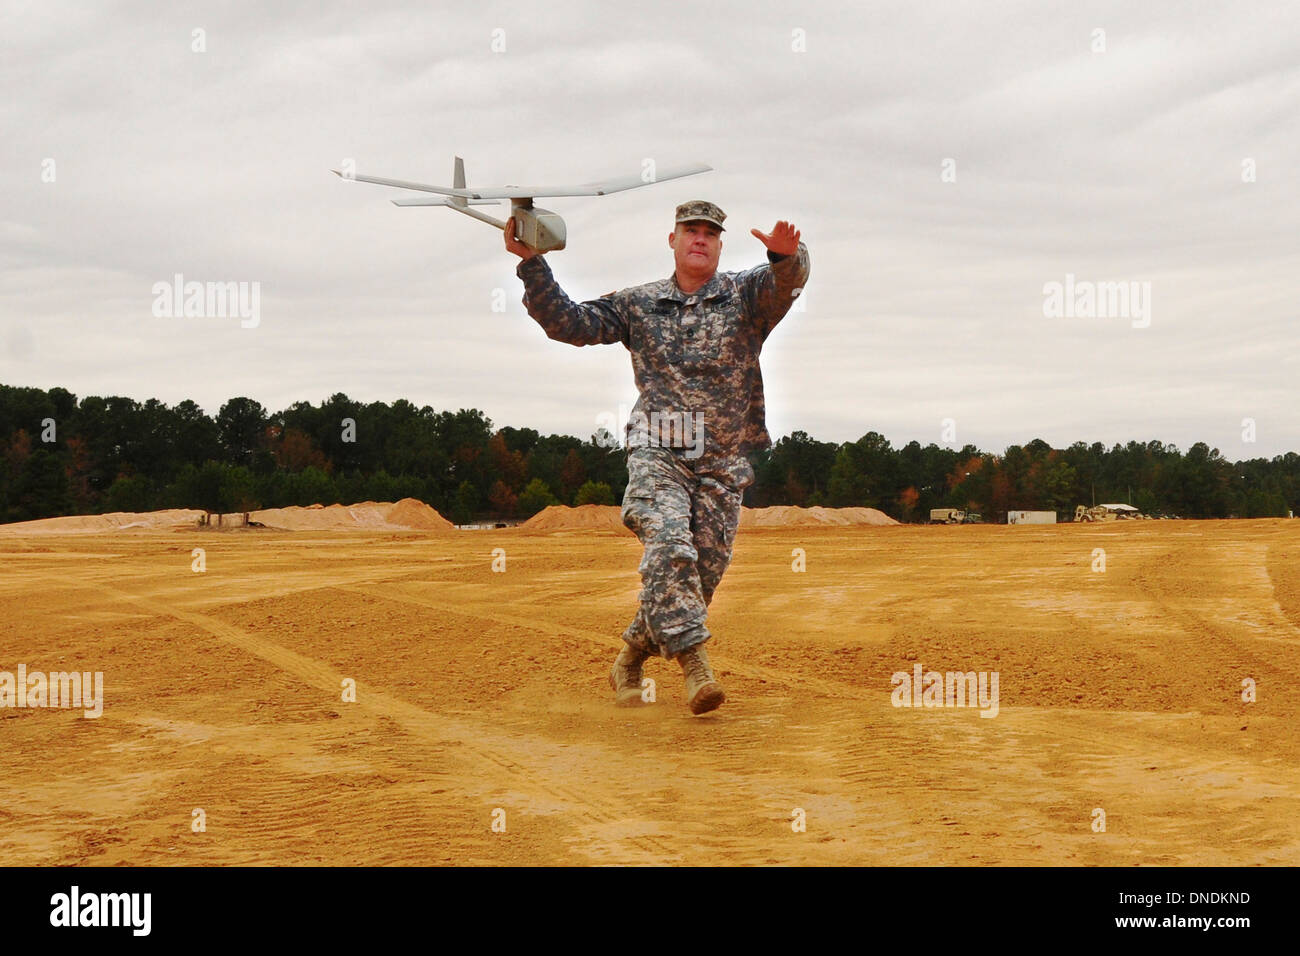 A US Army soldier launches a RQ-11B Raven unmanned aerial system before an instruction flight at McCrady Training Center November 21, 2013 in Eastover, S.C. - Stock Image